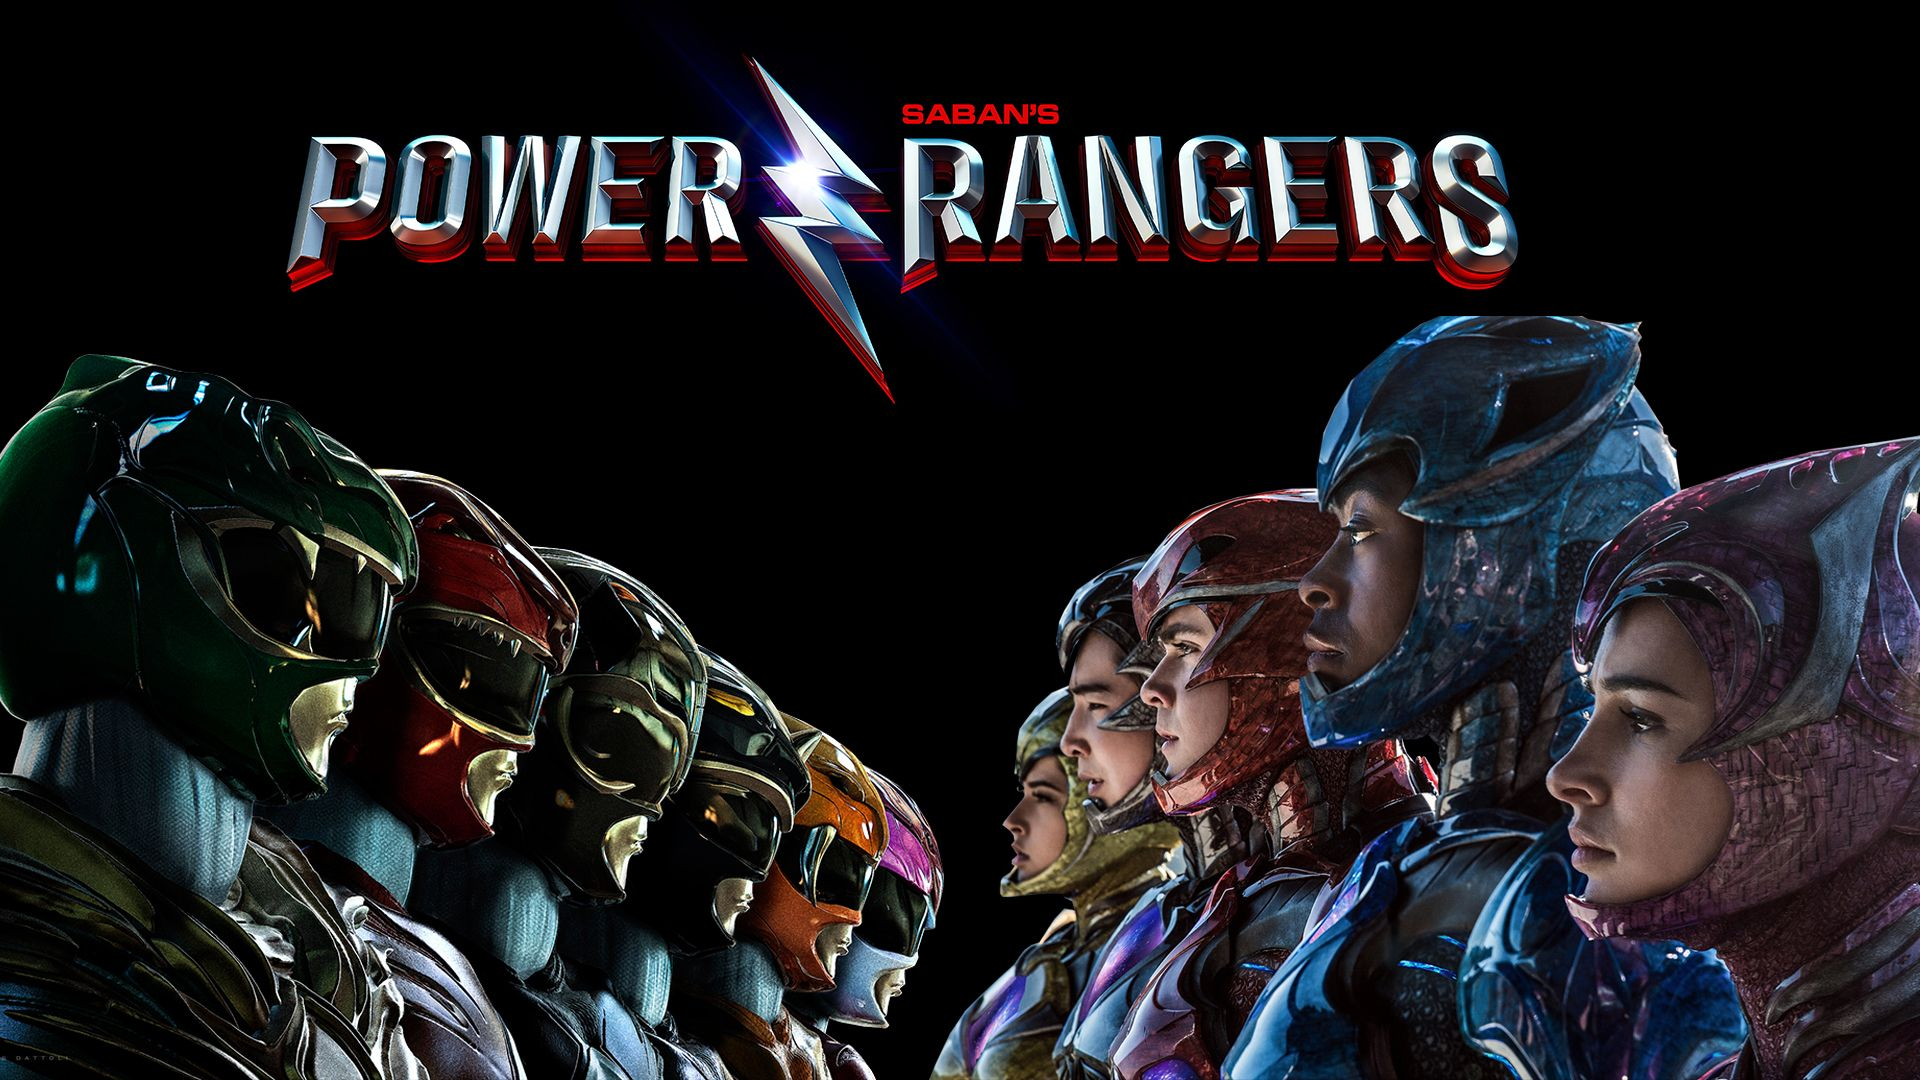 power rangers 2017 wallpaper de filme hd # 2424- wallpaperhitz